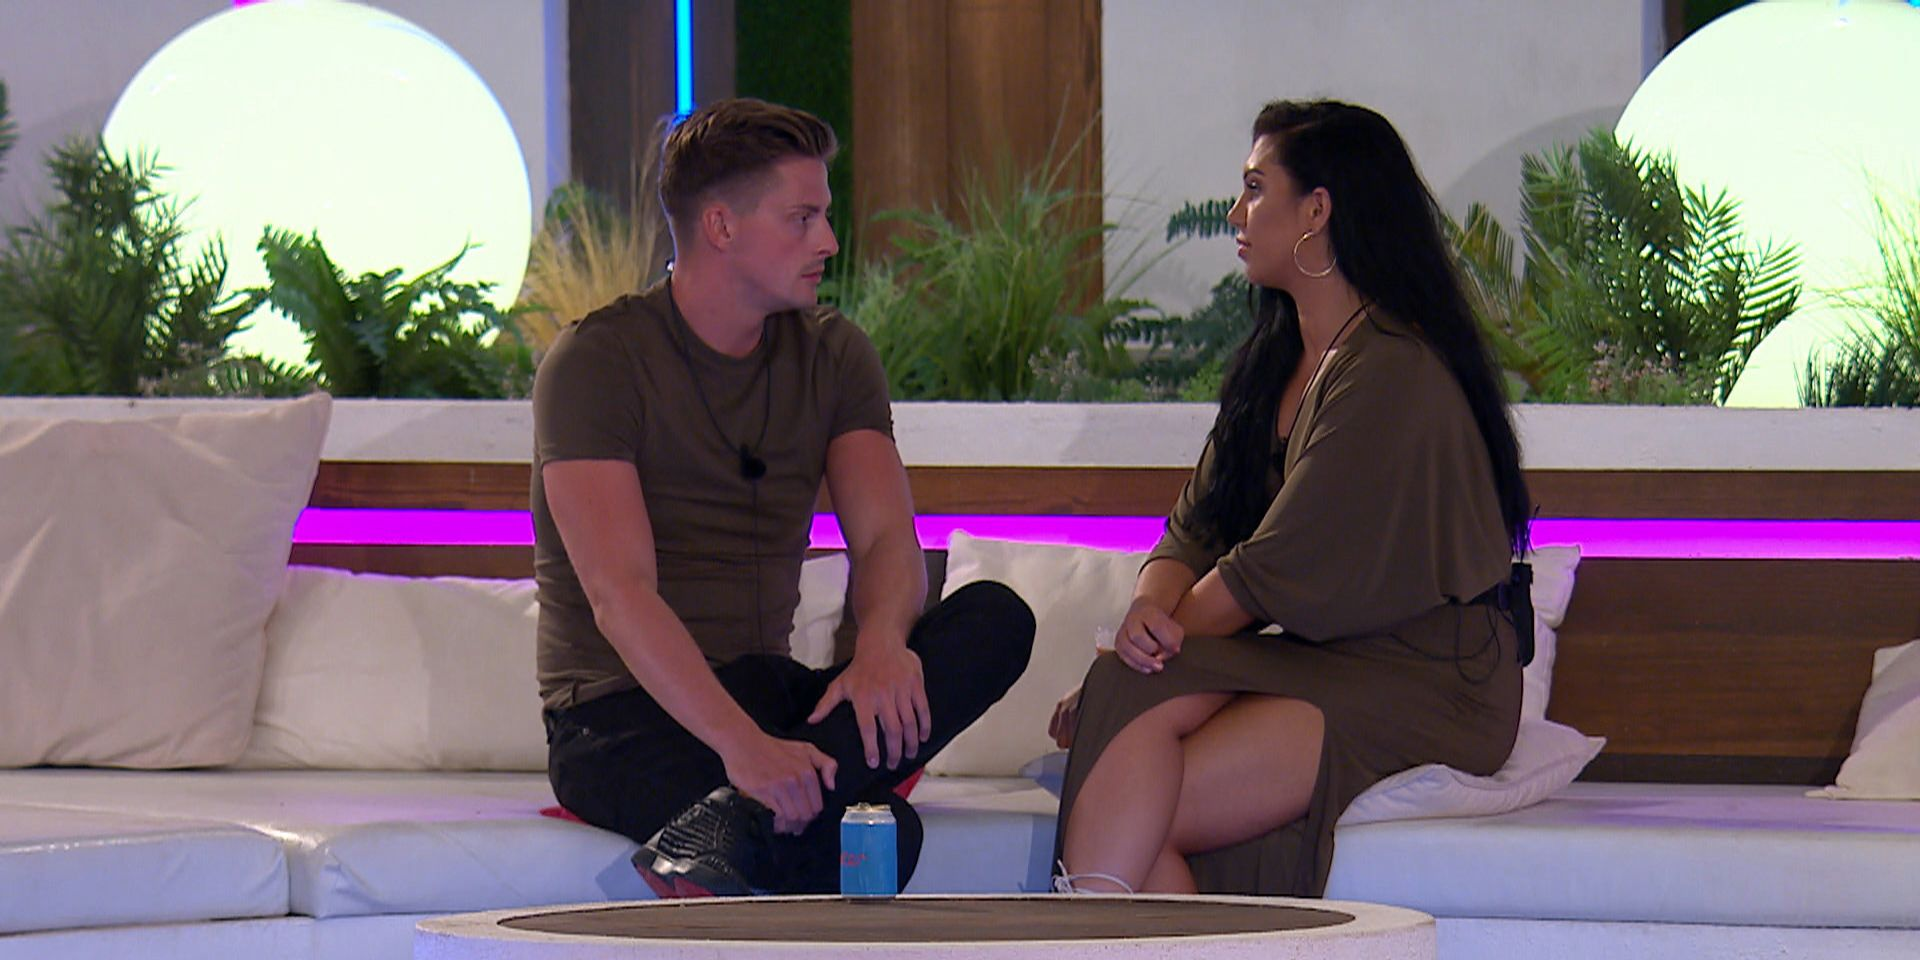 ©ITV PlcThe Love Island Dr Alex moment that received complaints to Ofcom